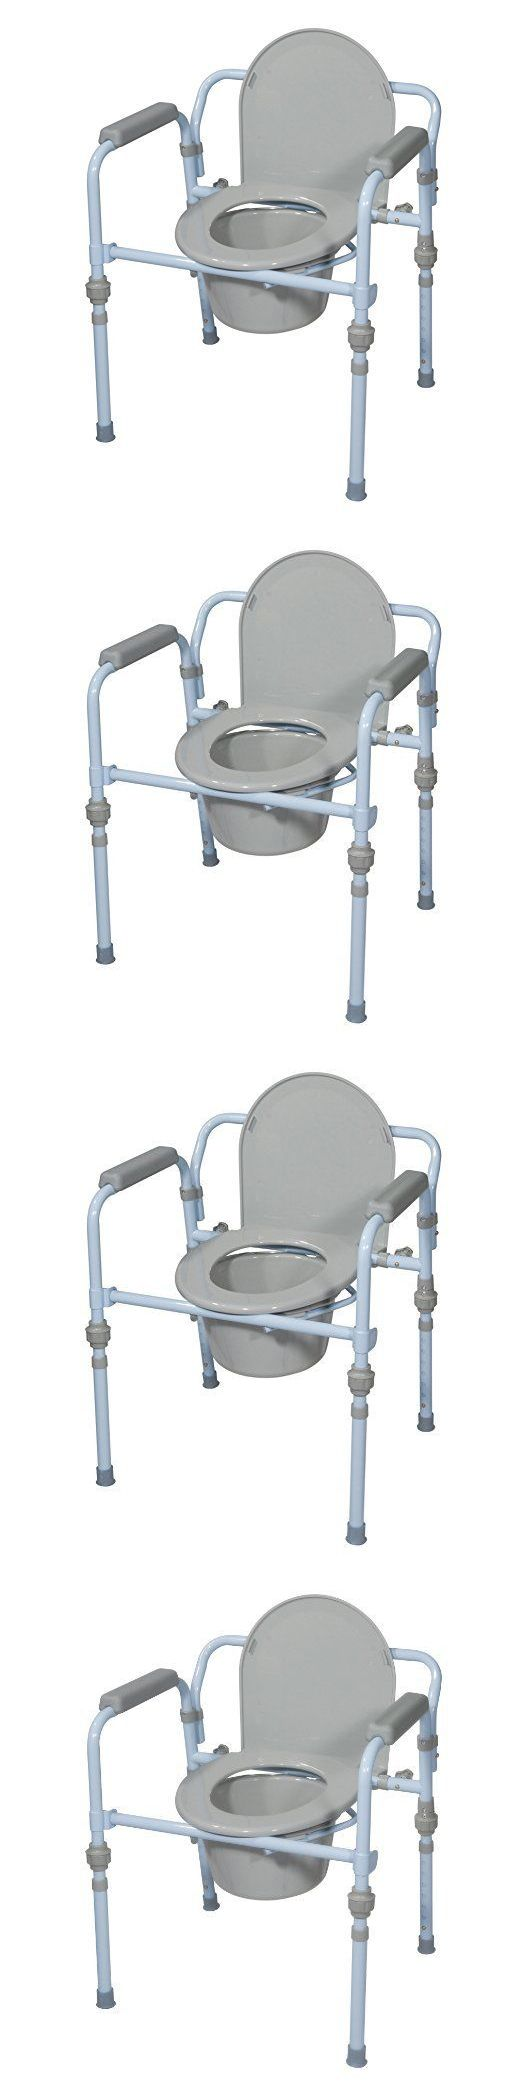 Best 25 Potty Chair Ideas On Pinterest Potty Chairs For